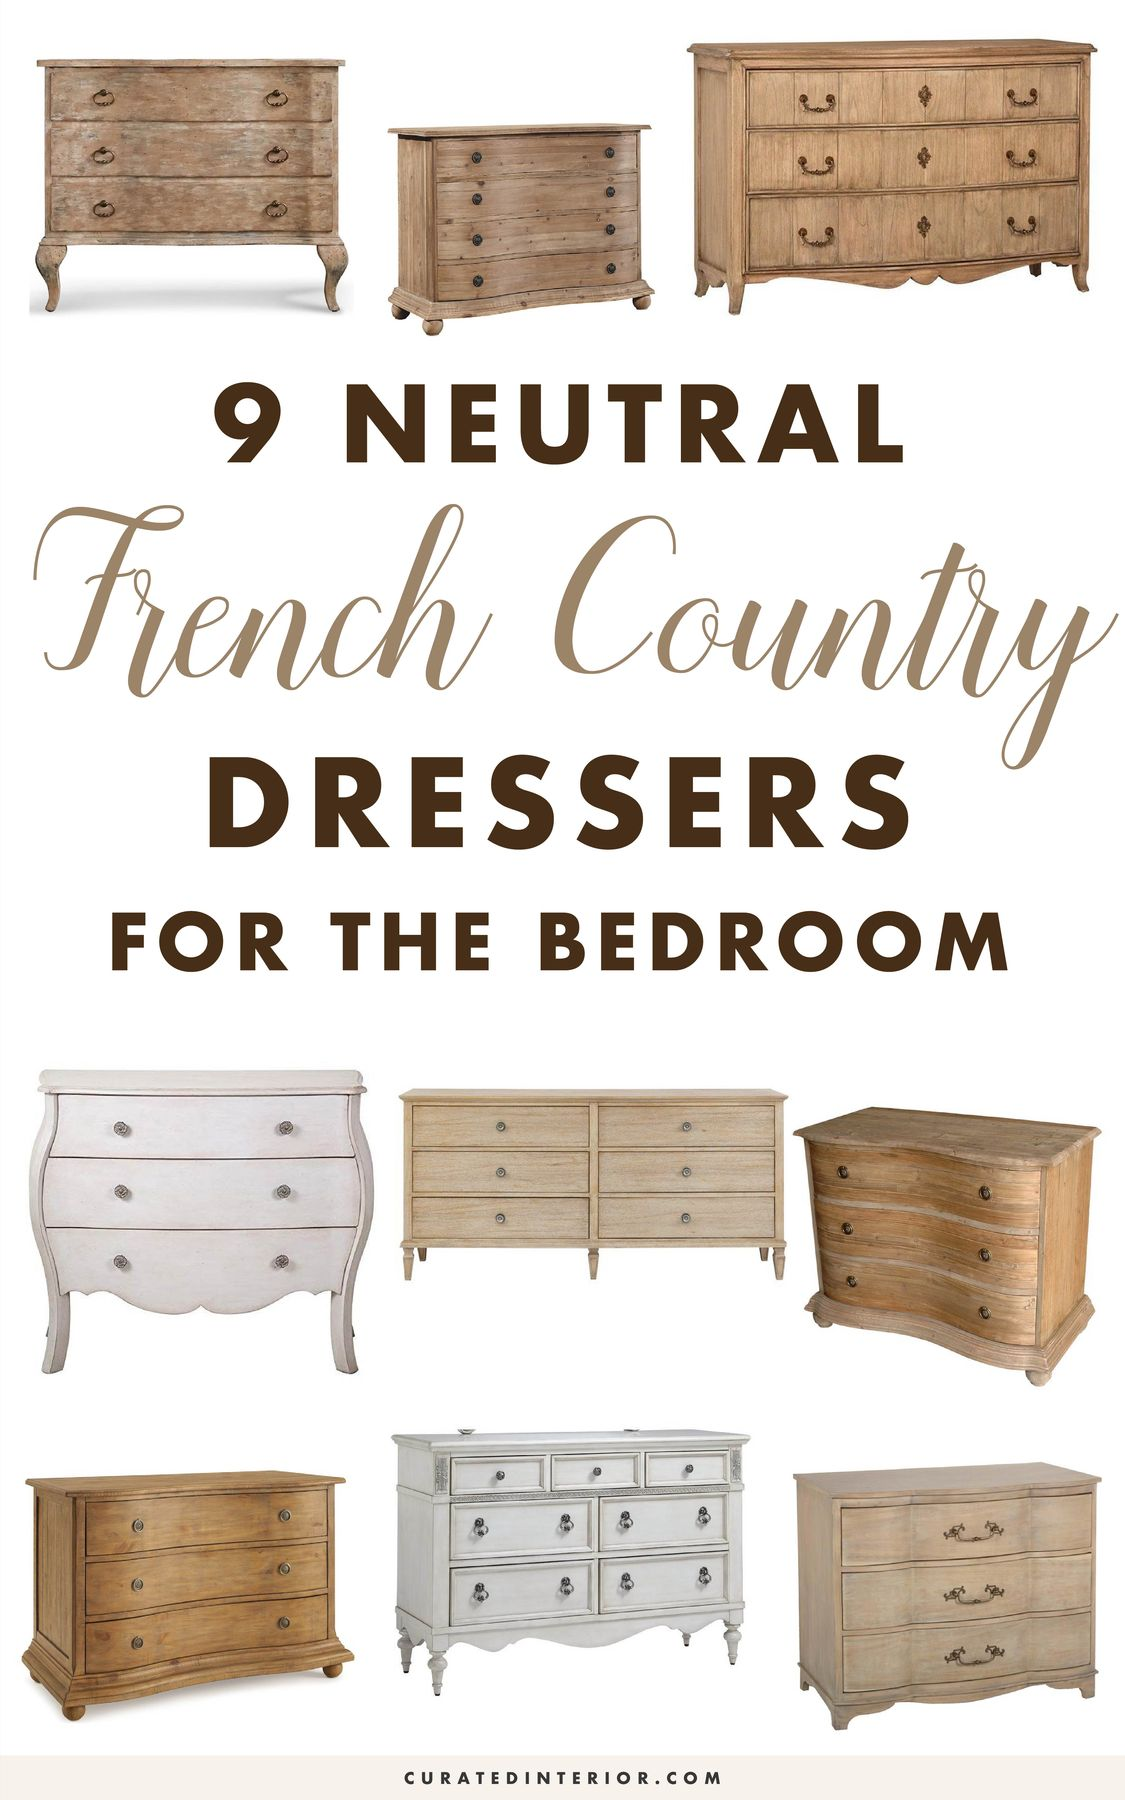 Neutral French Country Dressers